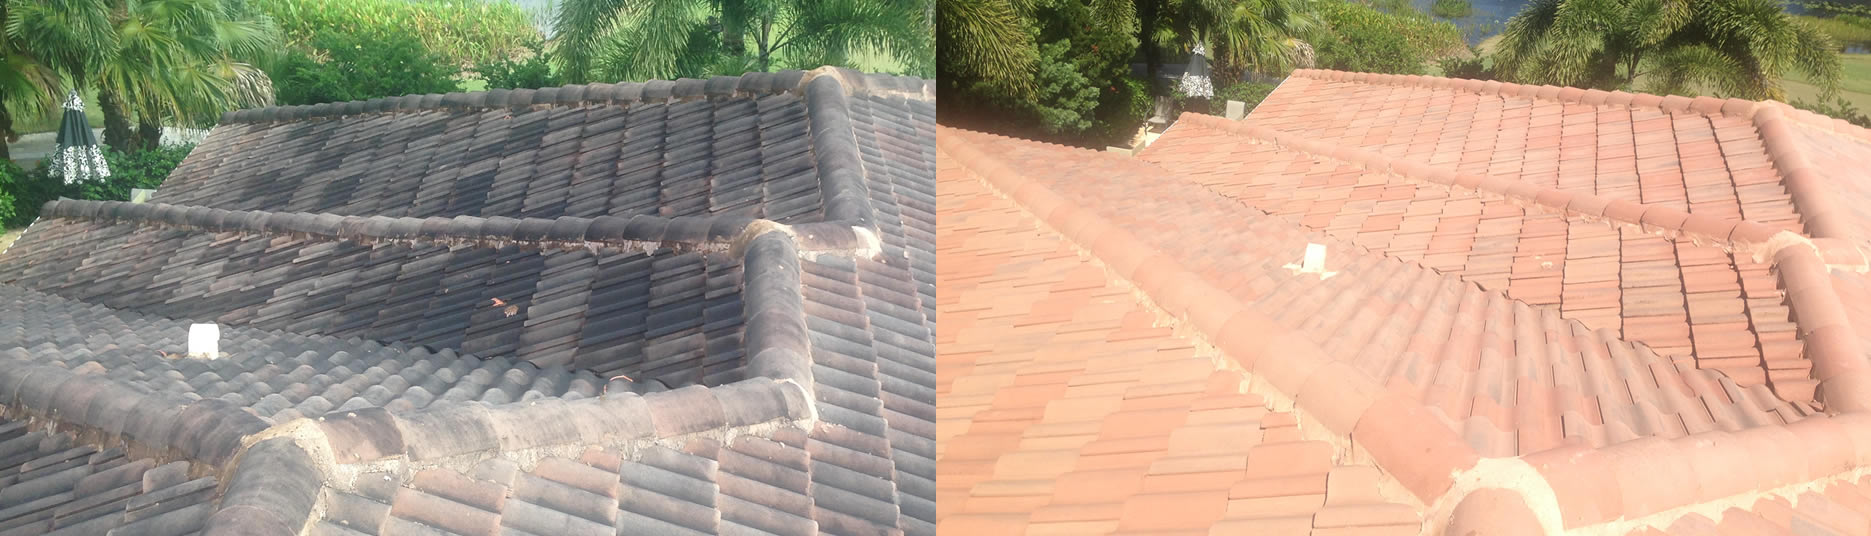 Coral Springs Roof Cleaning U2013 Be Smart And Choose Fiddler!